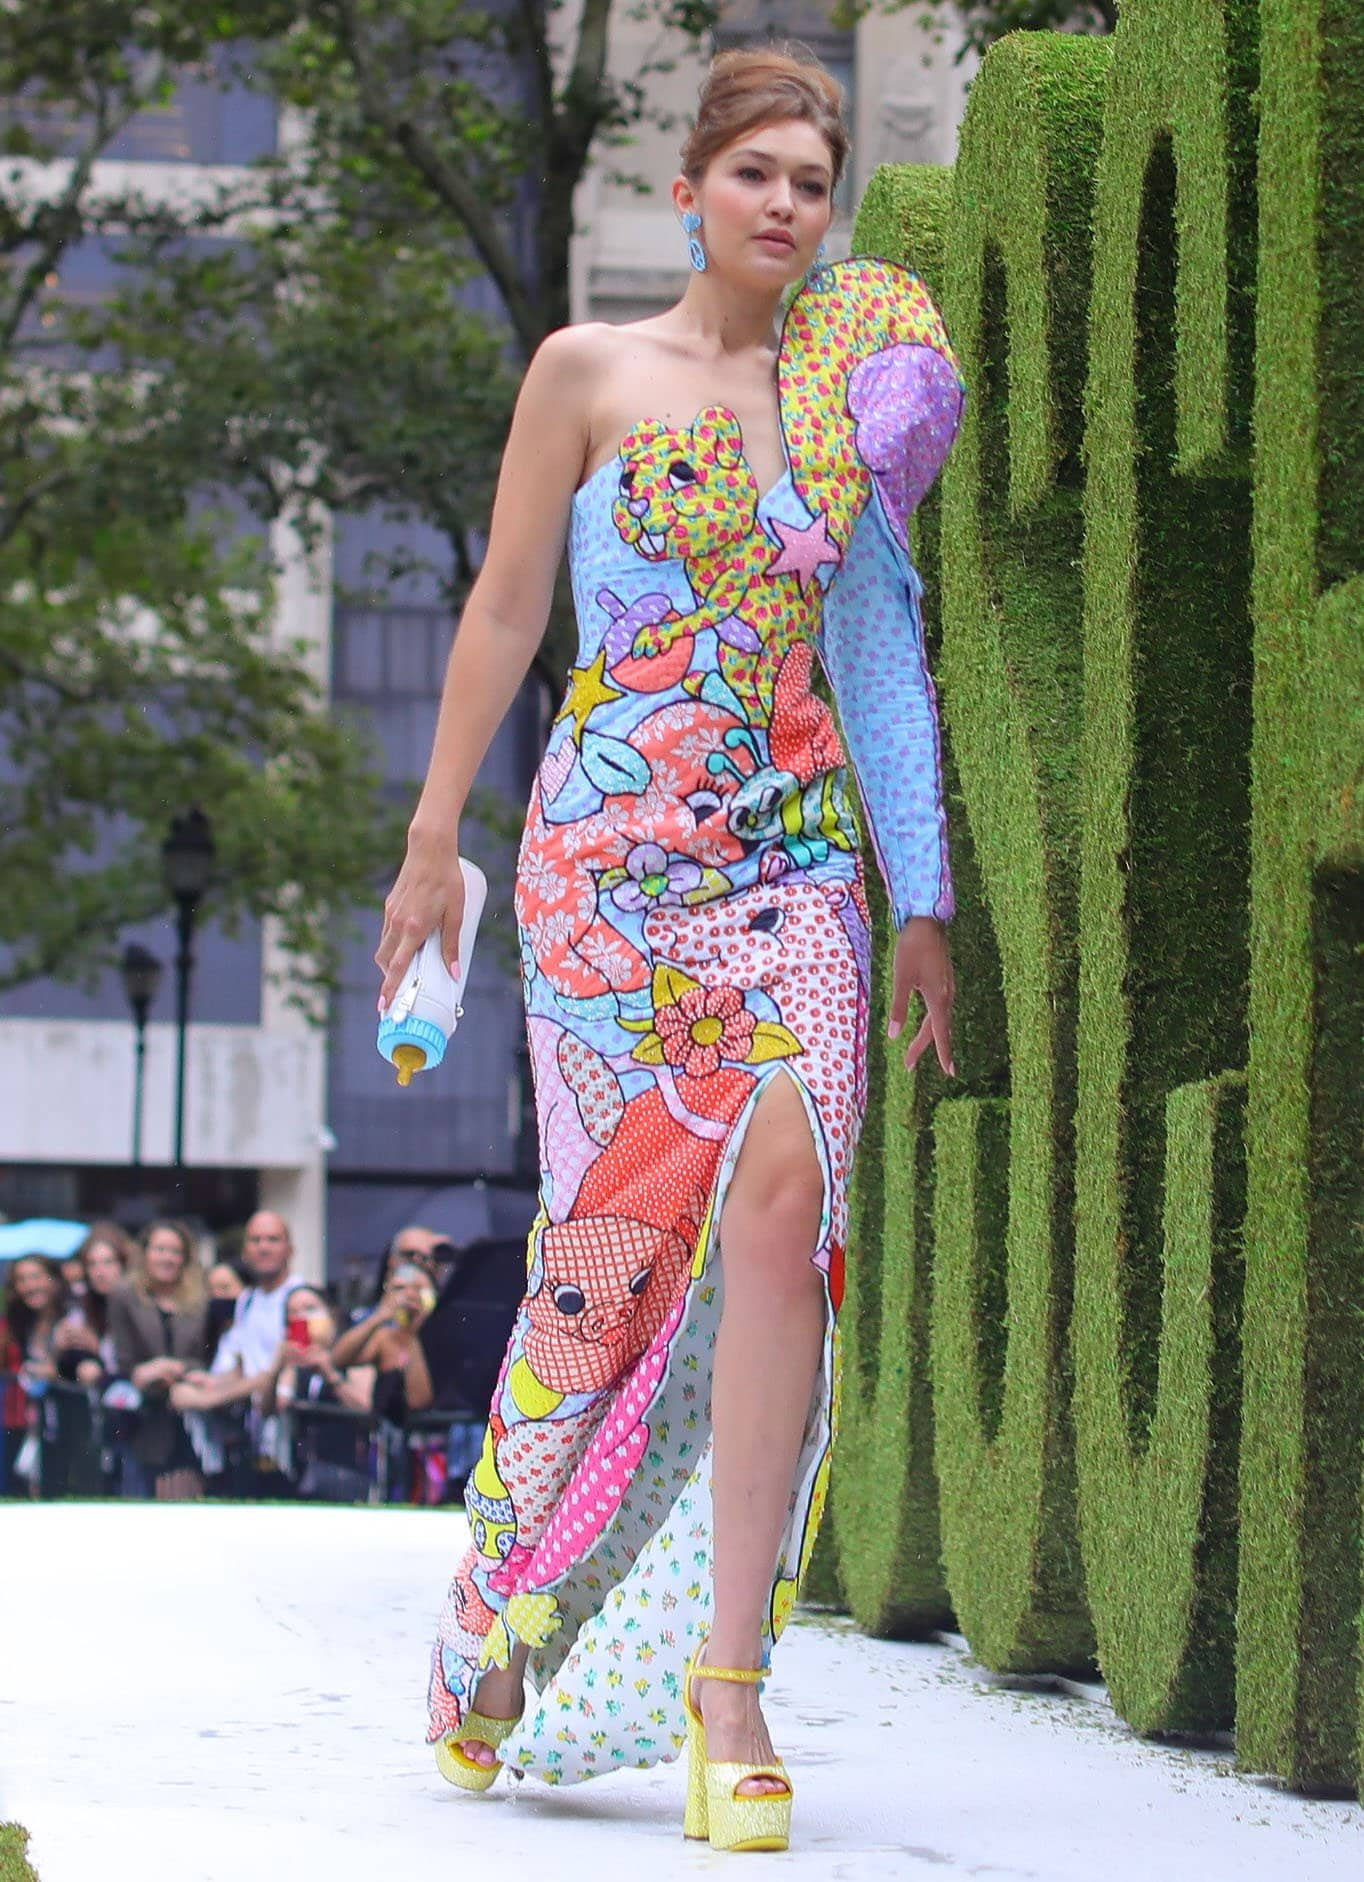 Gigi Hadid wears a pastel cartoon animal frock with yellow platform heels and a baby bottle clutch for Moschino's NYFW runway show on September 9, 2021